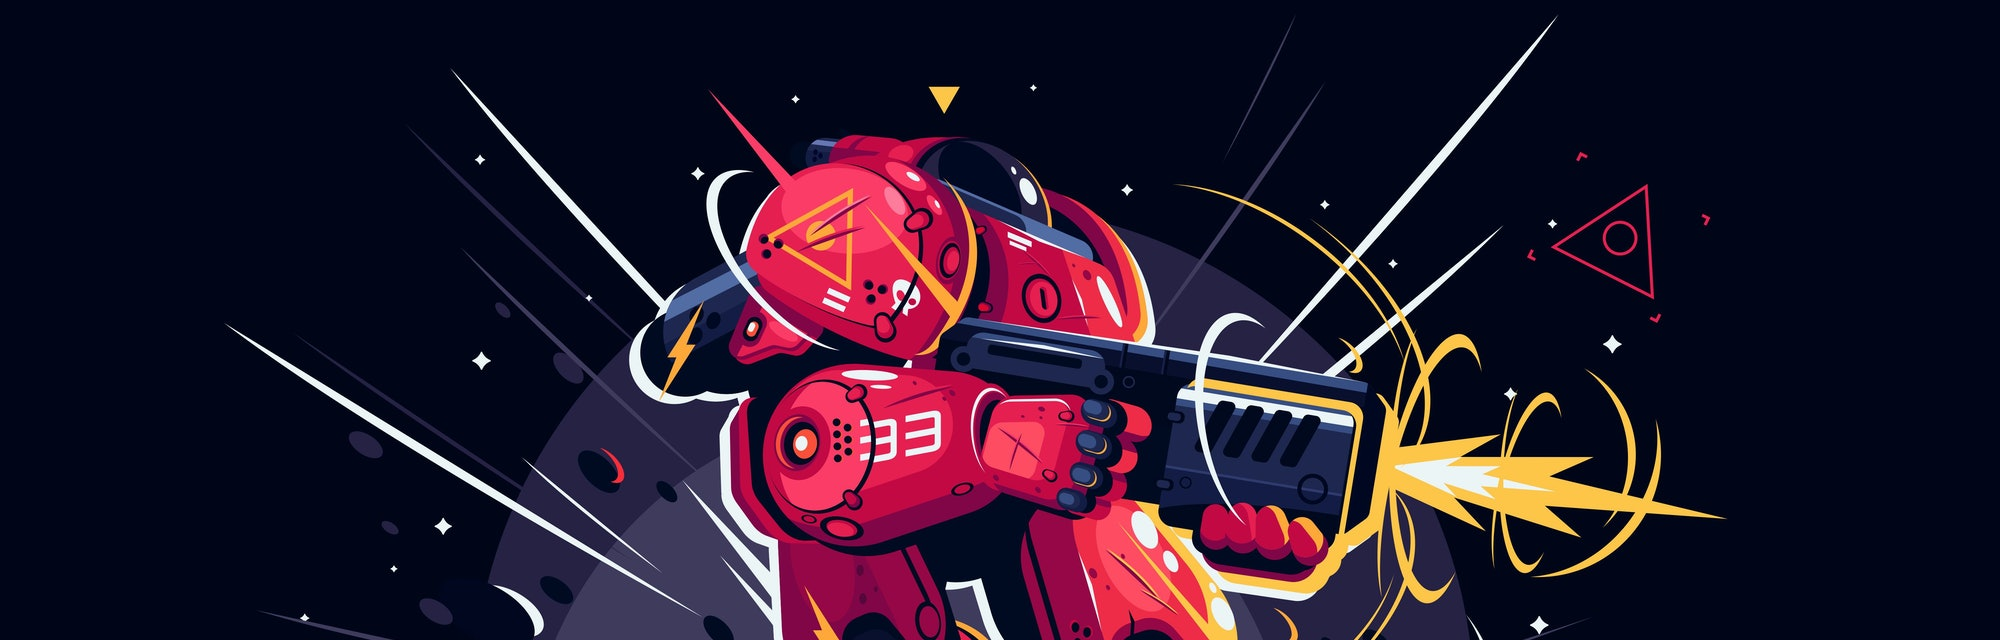 Infantryman with weapon in battlefield vector illustration. Foot-soldier shoots a gun. Military invader of future with hardware flat style concept. Isolated on dark background